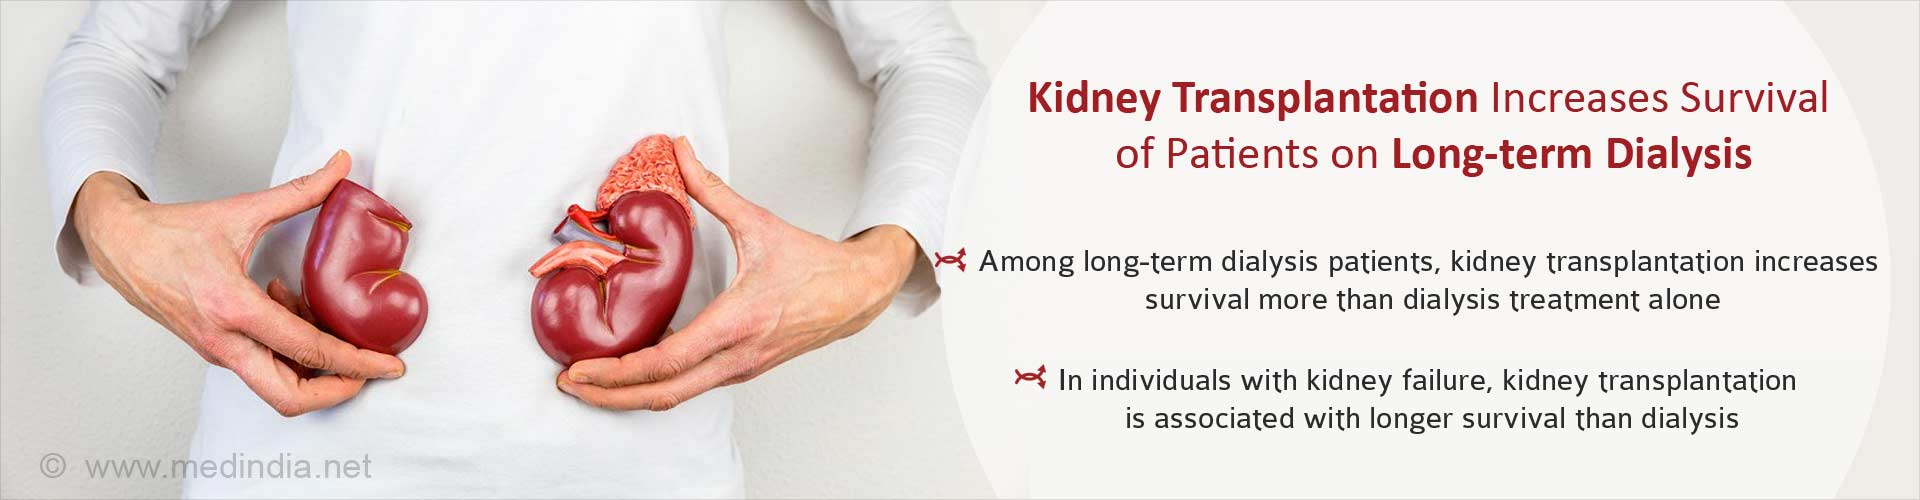 Kidney Transplantation is Associated With Better Survival